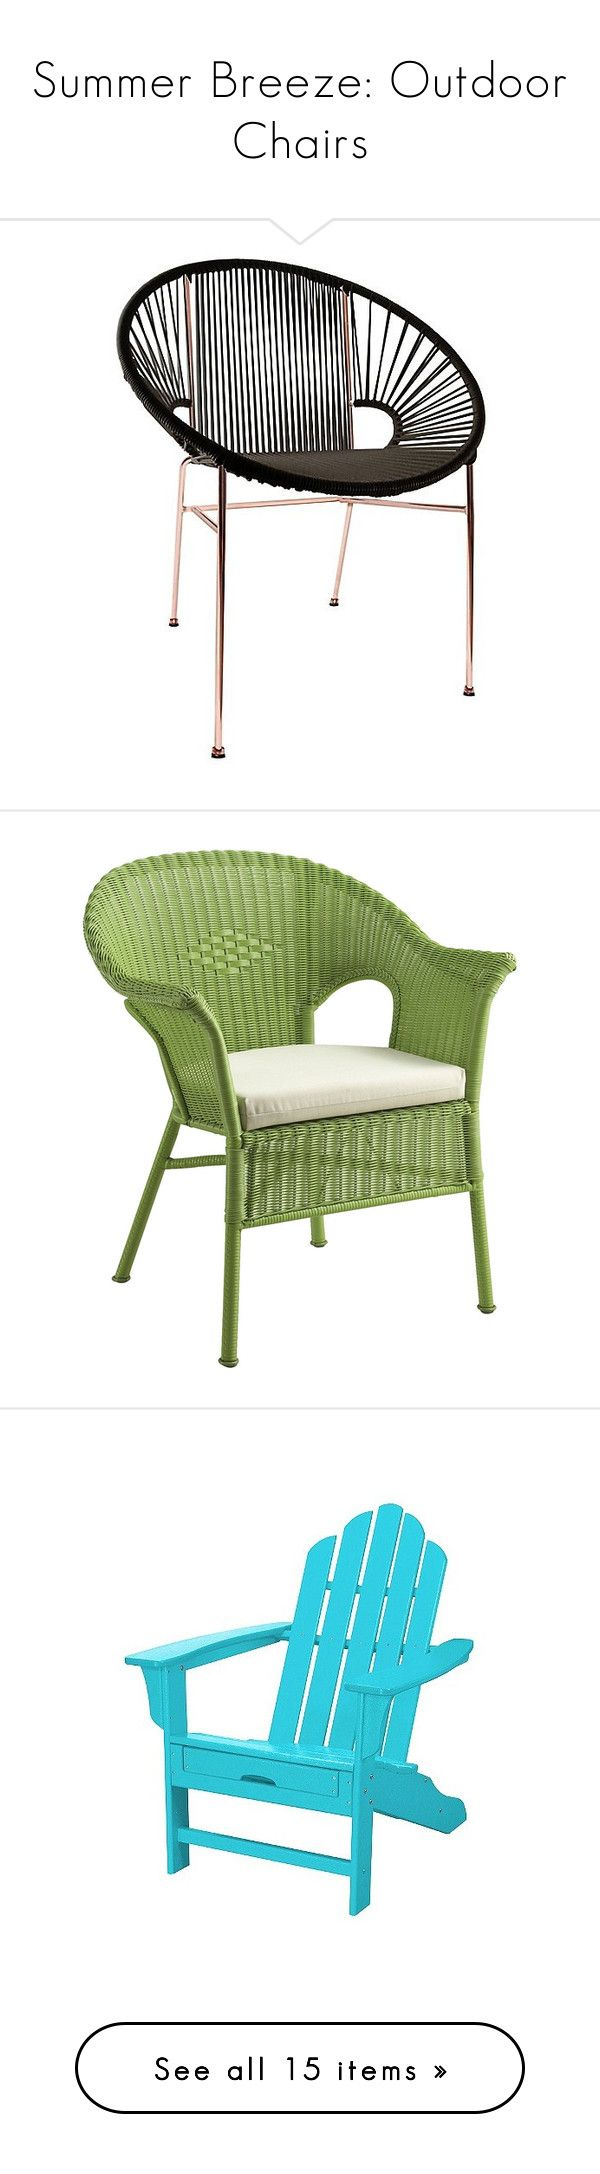 """""""Summer Breeze: Outdoor Chairs"""" by polyvore-editorial ❤ liked on Polyvore featuring outdoorchairs, home, outdoors, patio furniture, outdoor chairs, chair, black, innit, black patio furniture and black outdoor furniture"""